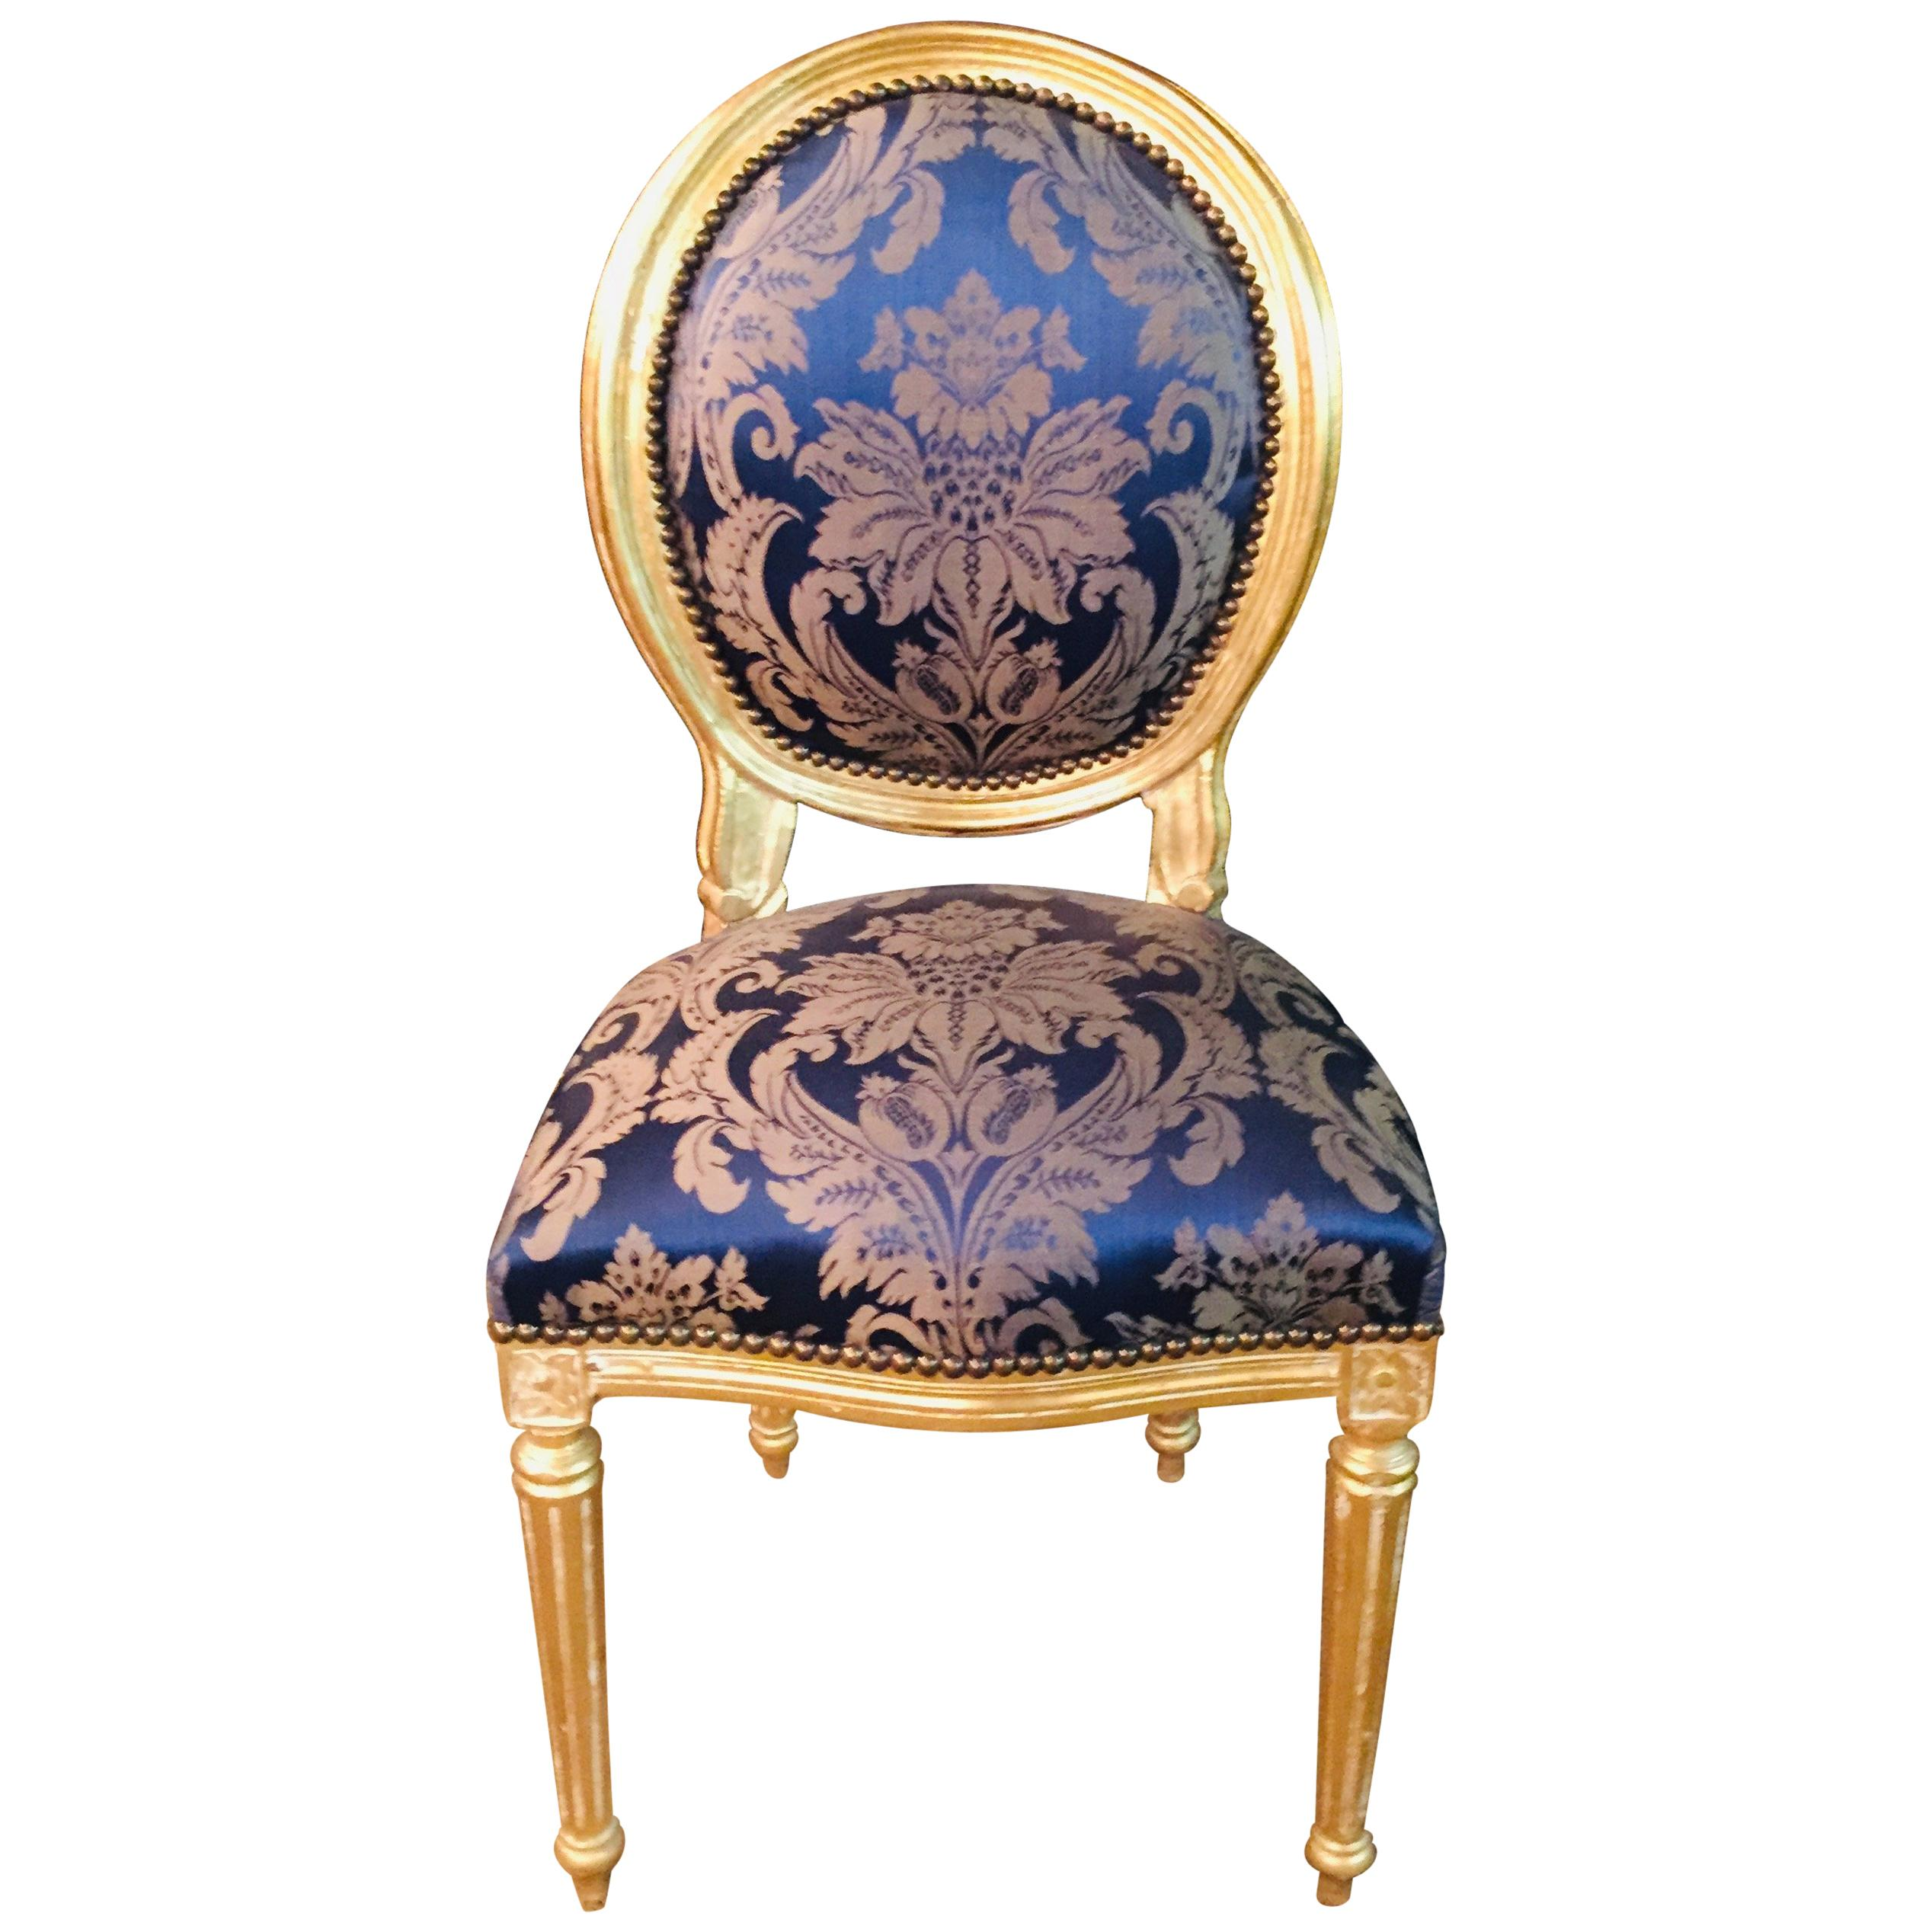 Charmant Chair In Louis Seize Style Gilded With Royal Fabric